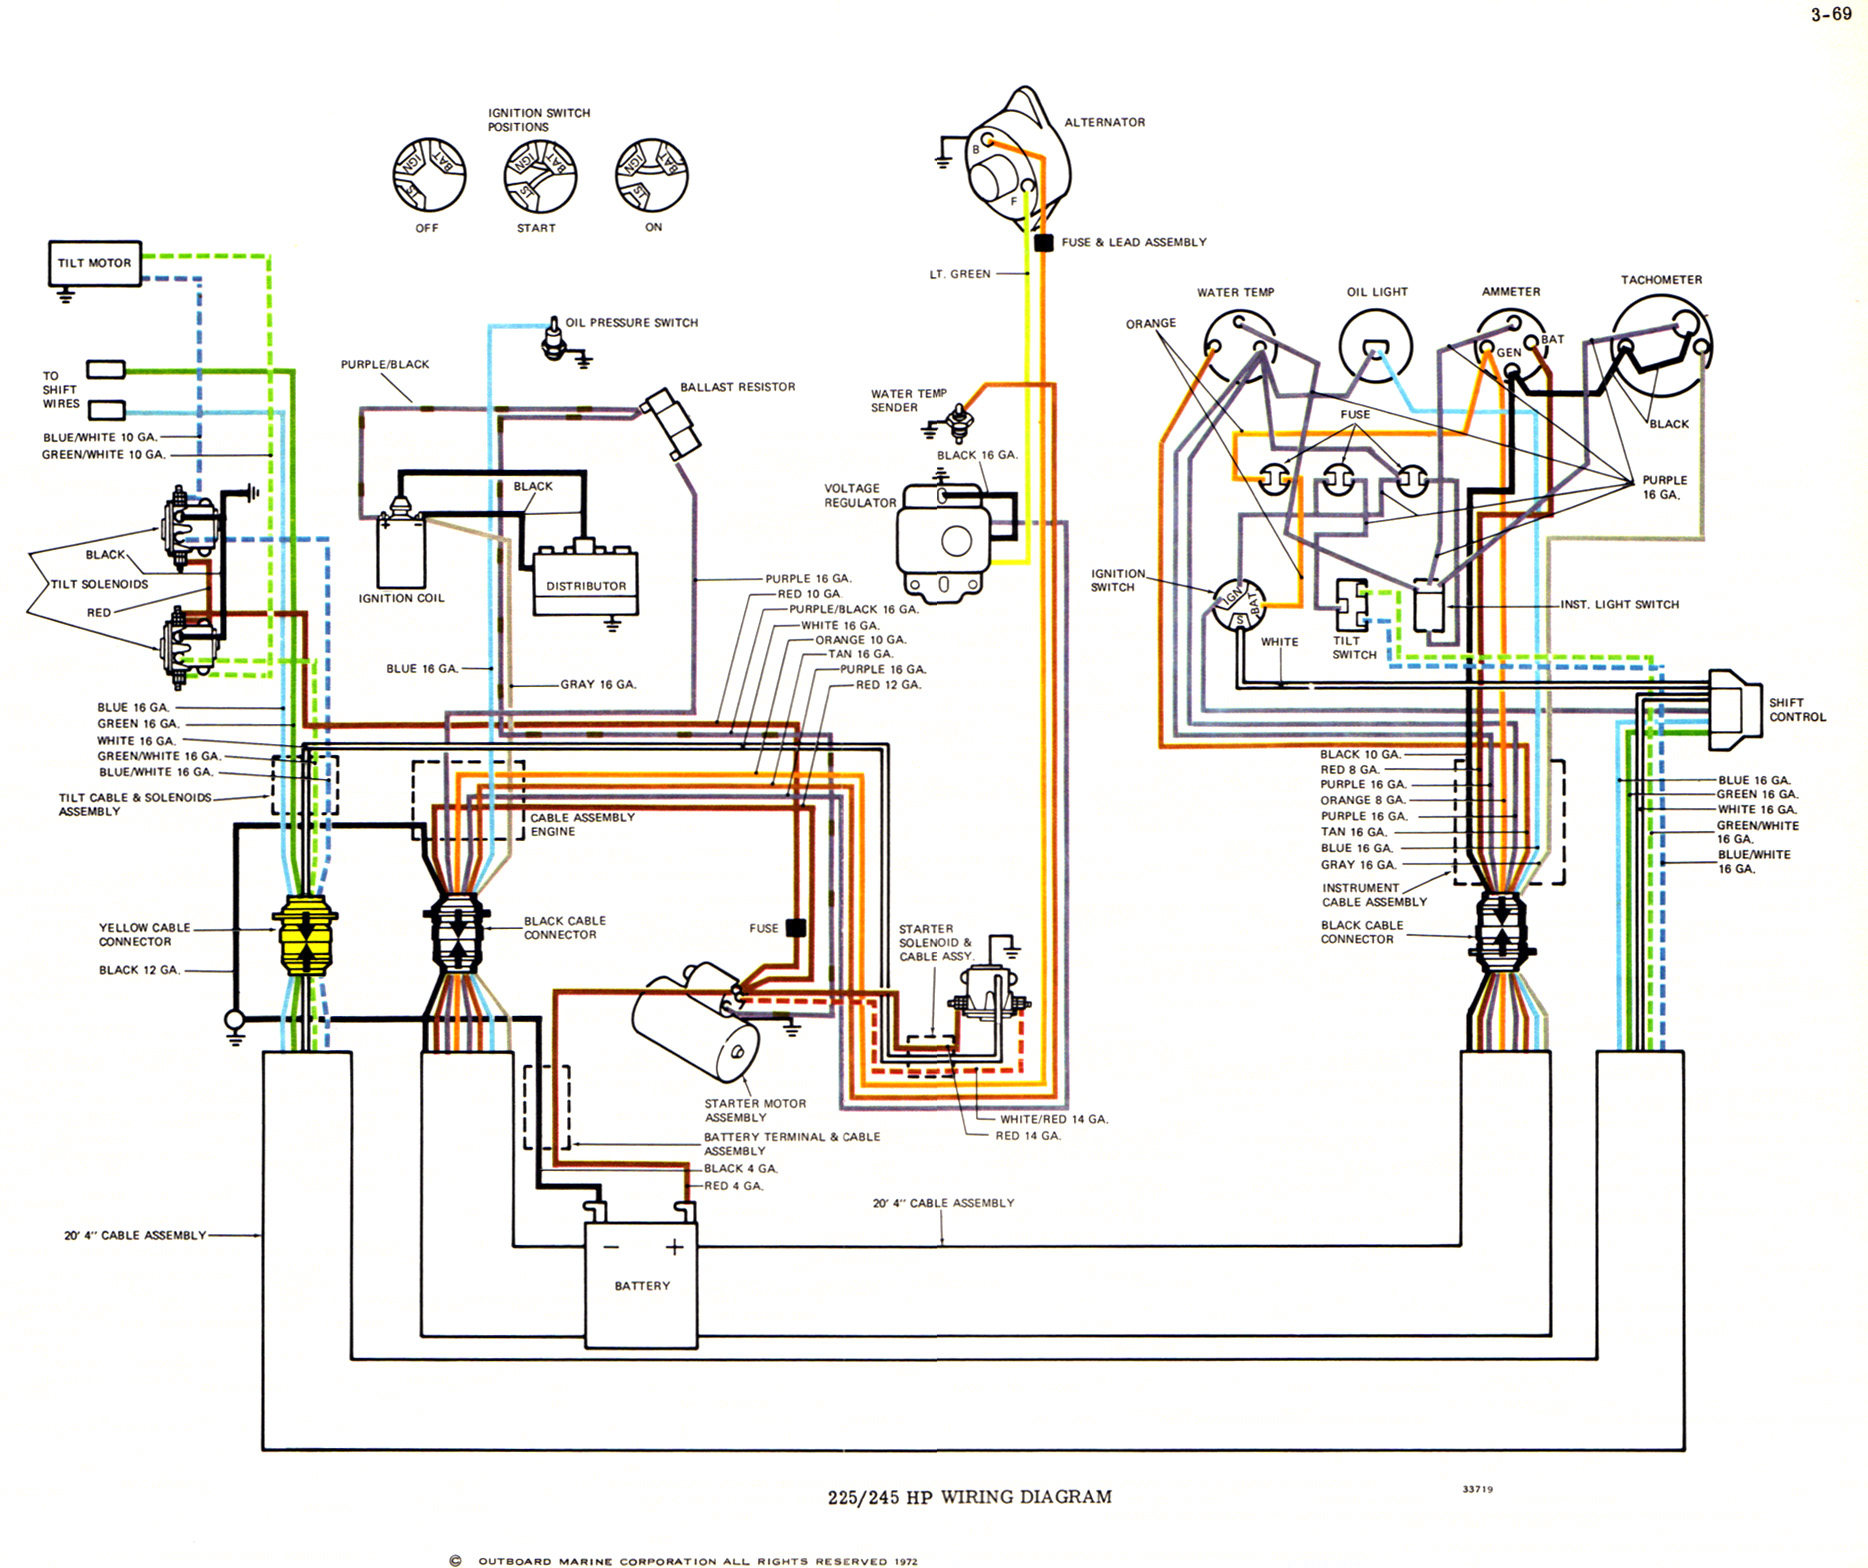 73_OMC_V8_all_big omc wiring diagram 1967 johnson 40 wiring diagram \u2022 wiring  at webbmarketing.co